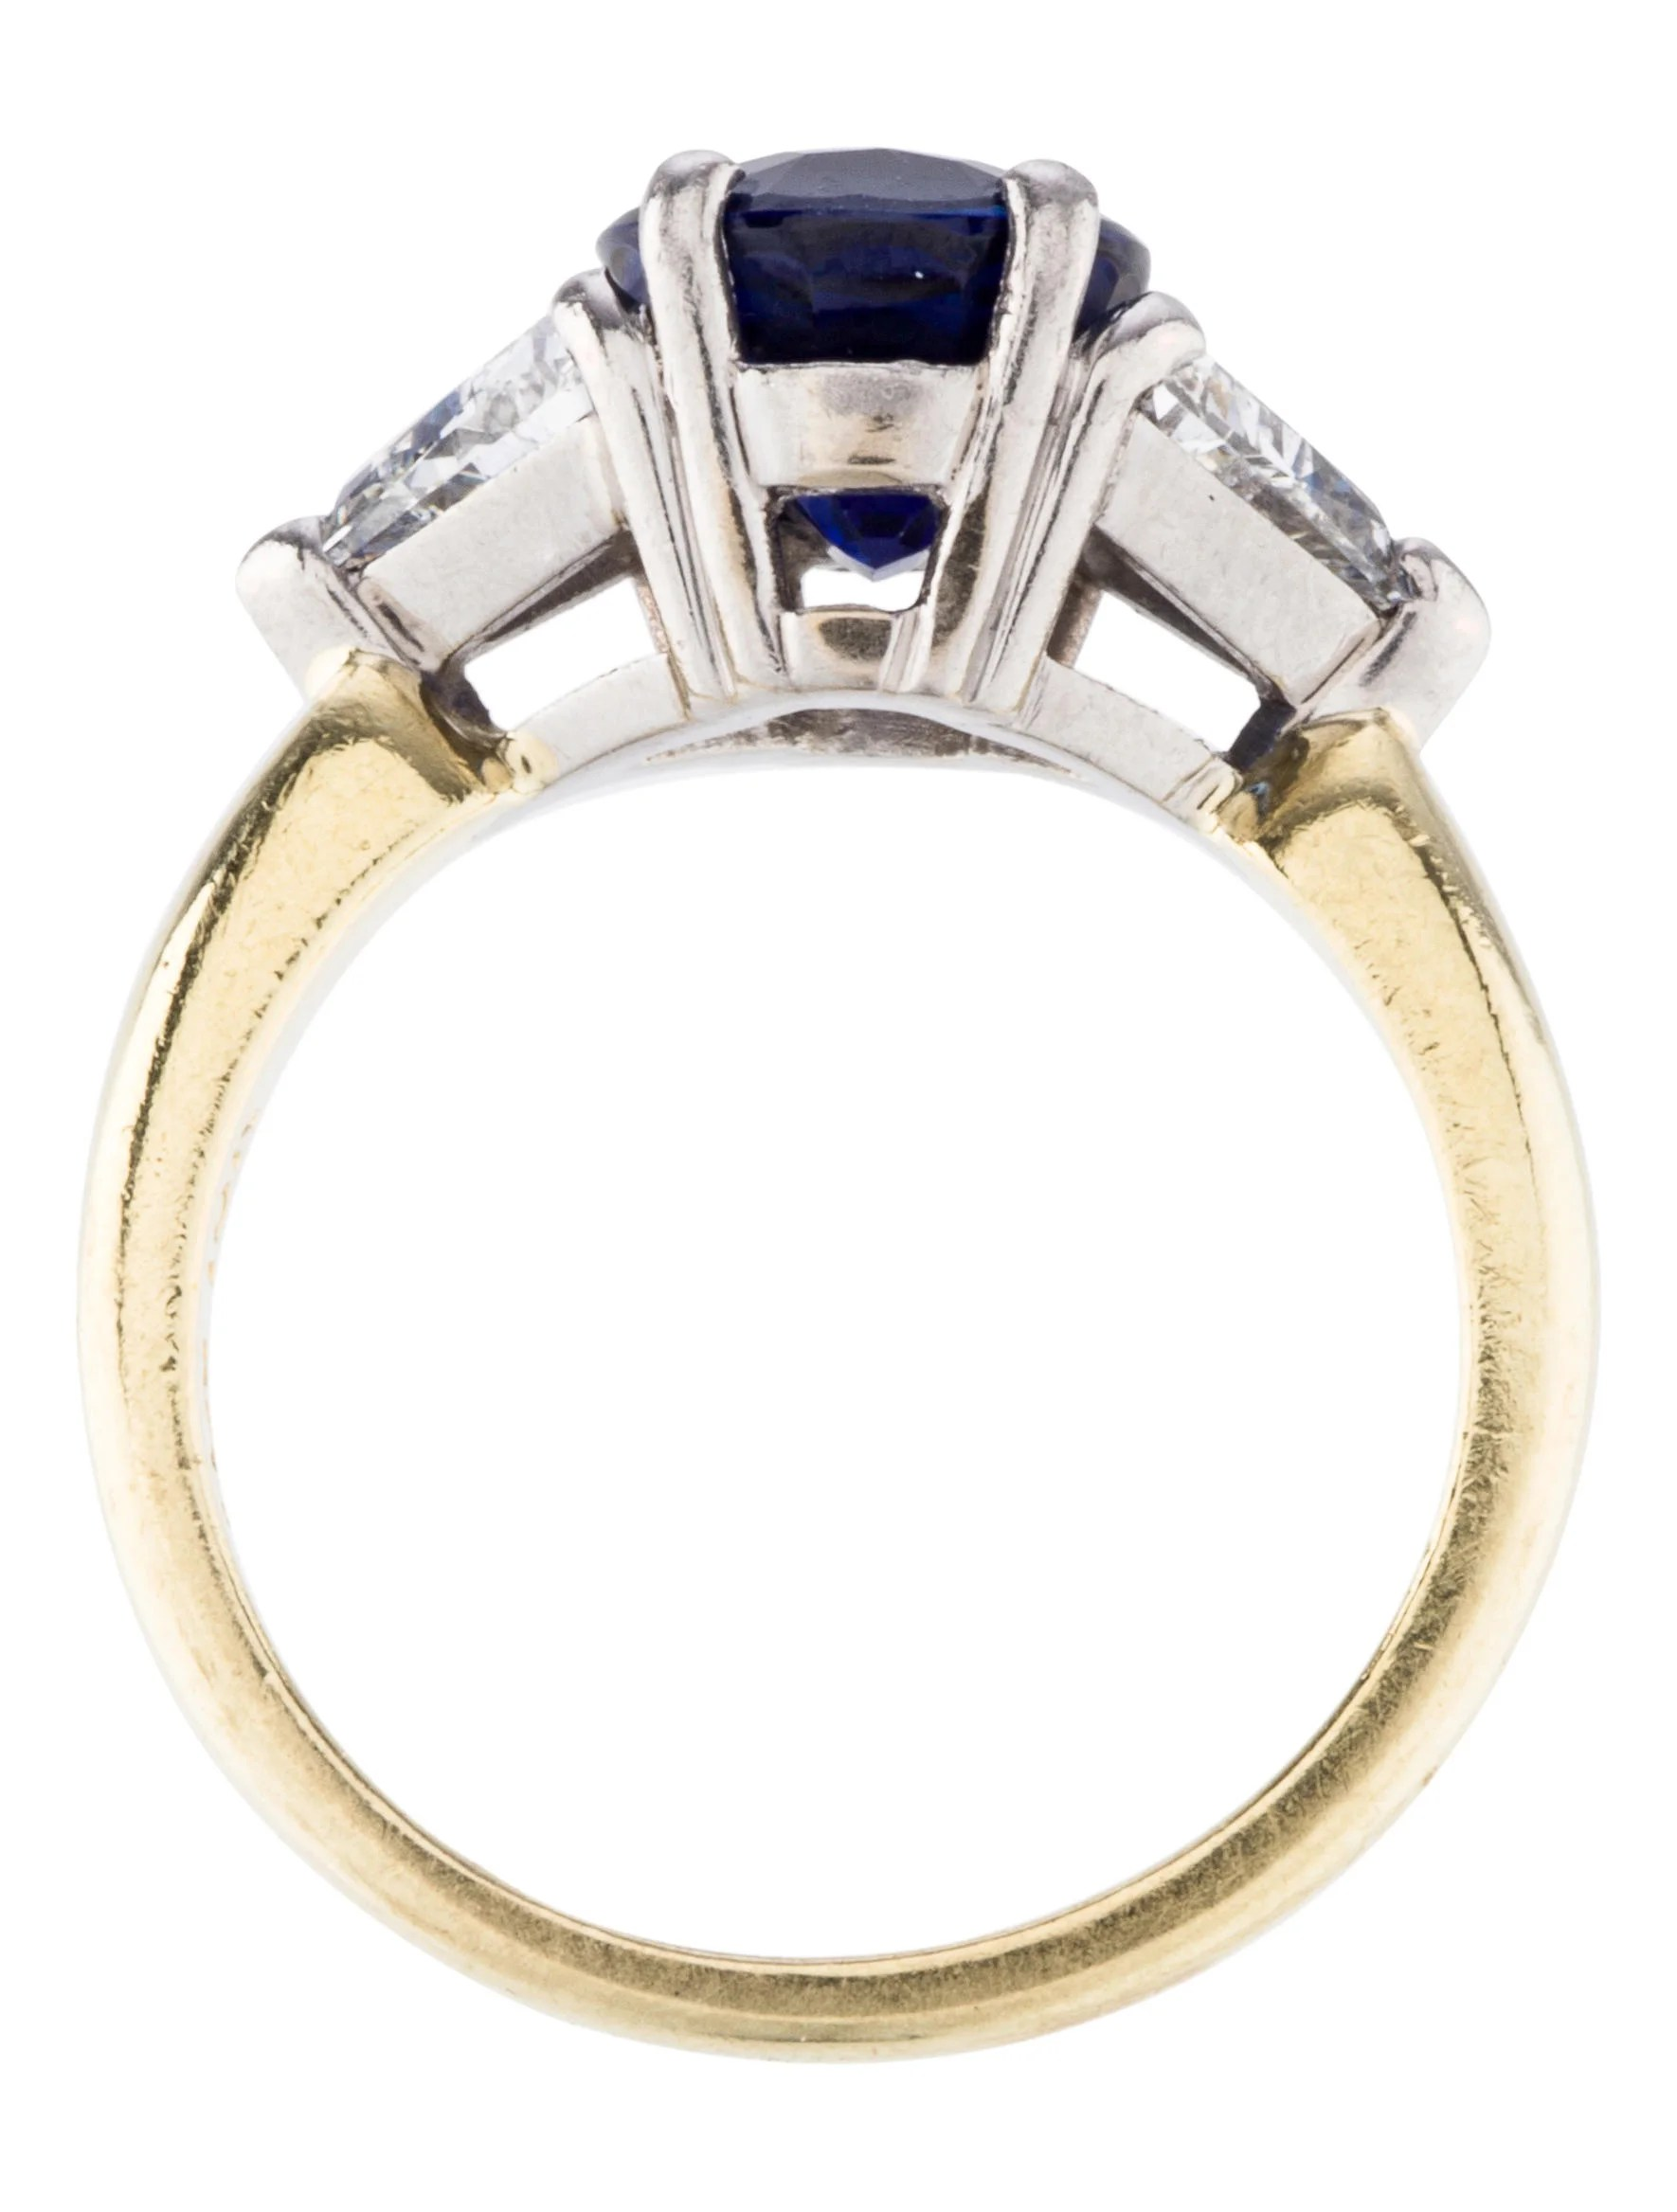 BiColor Sapphire  Diamond Ring  Rings  RRING29361  The RealReal